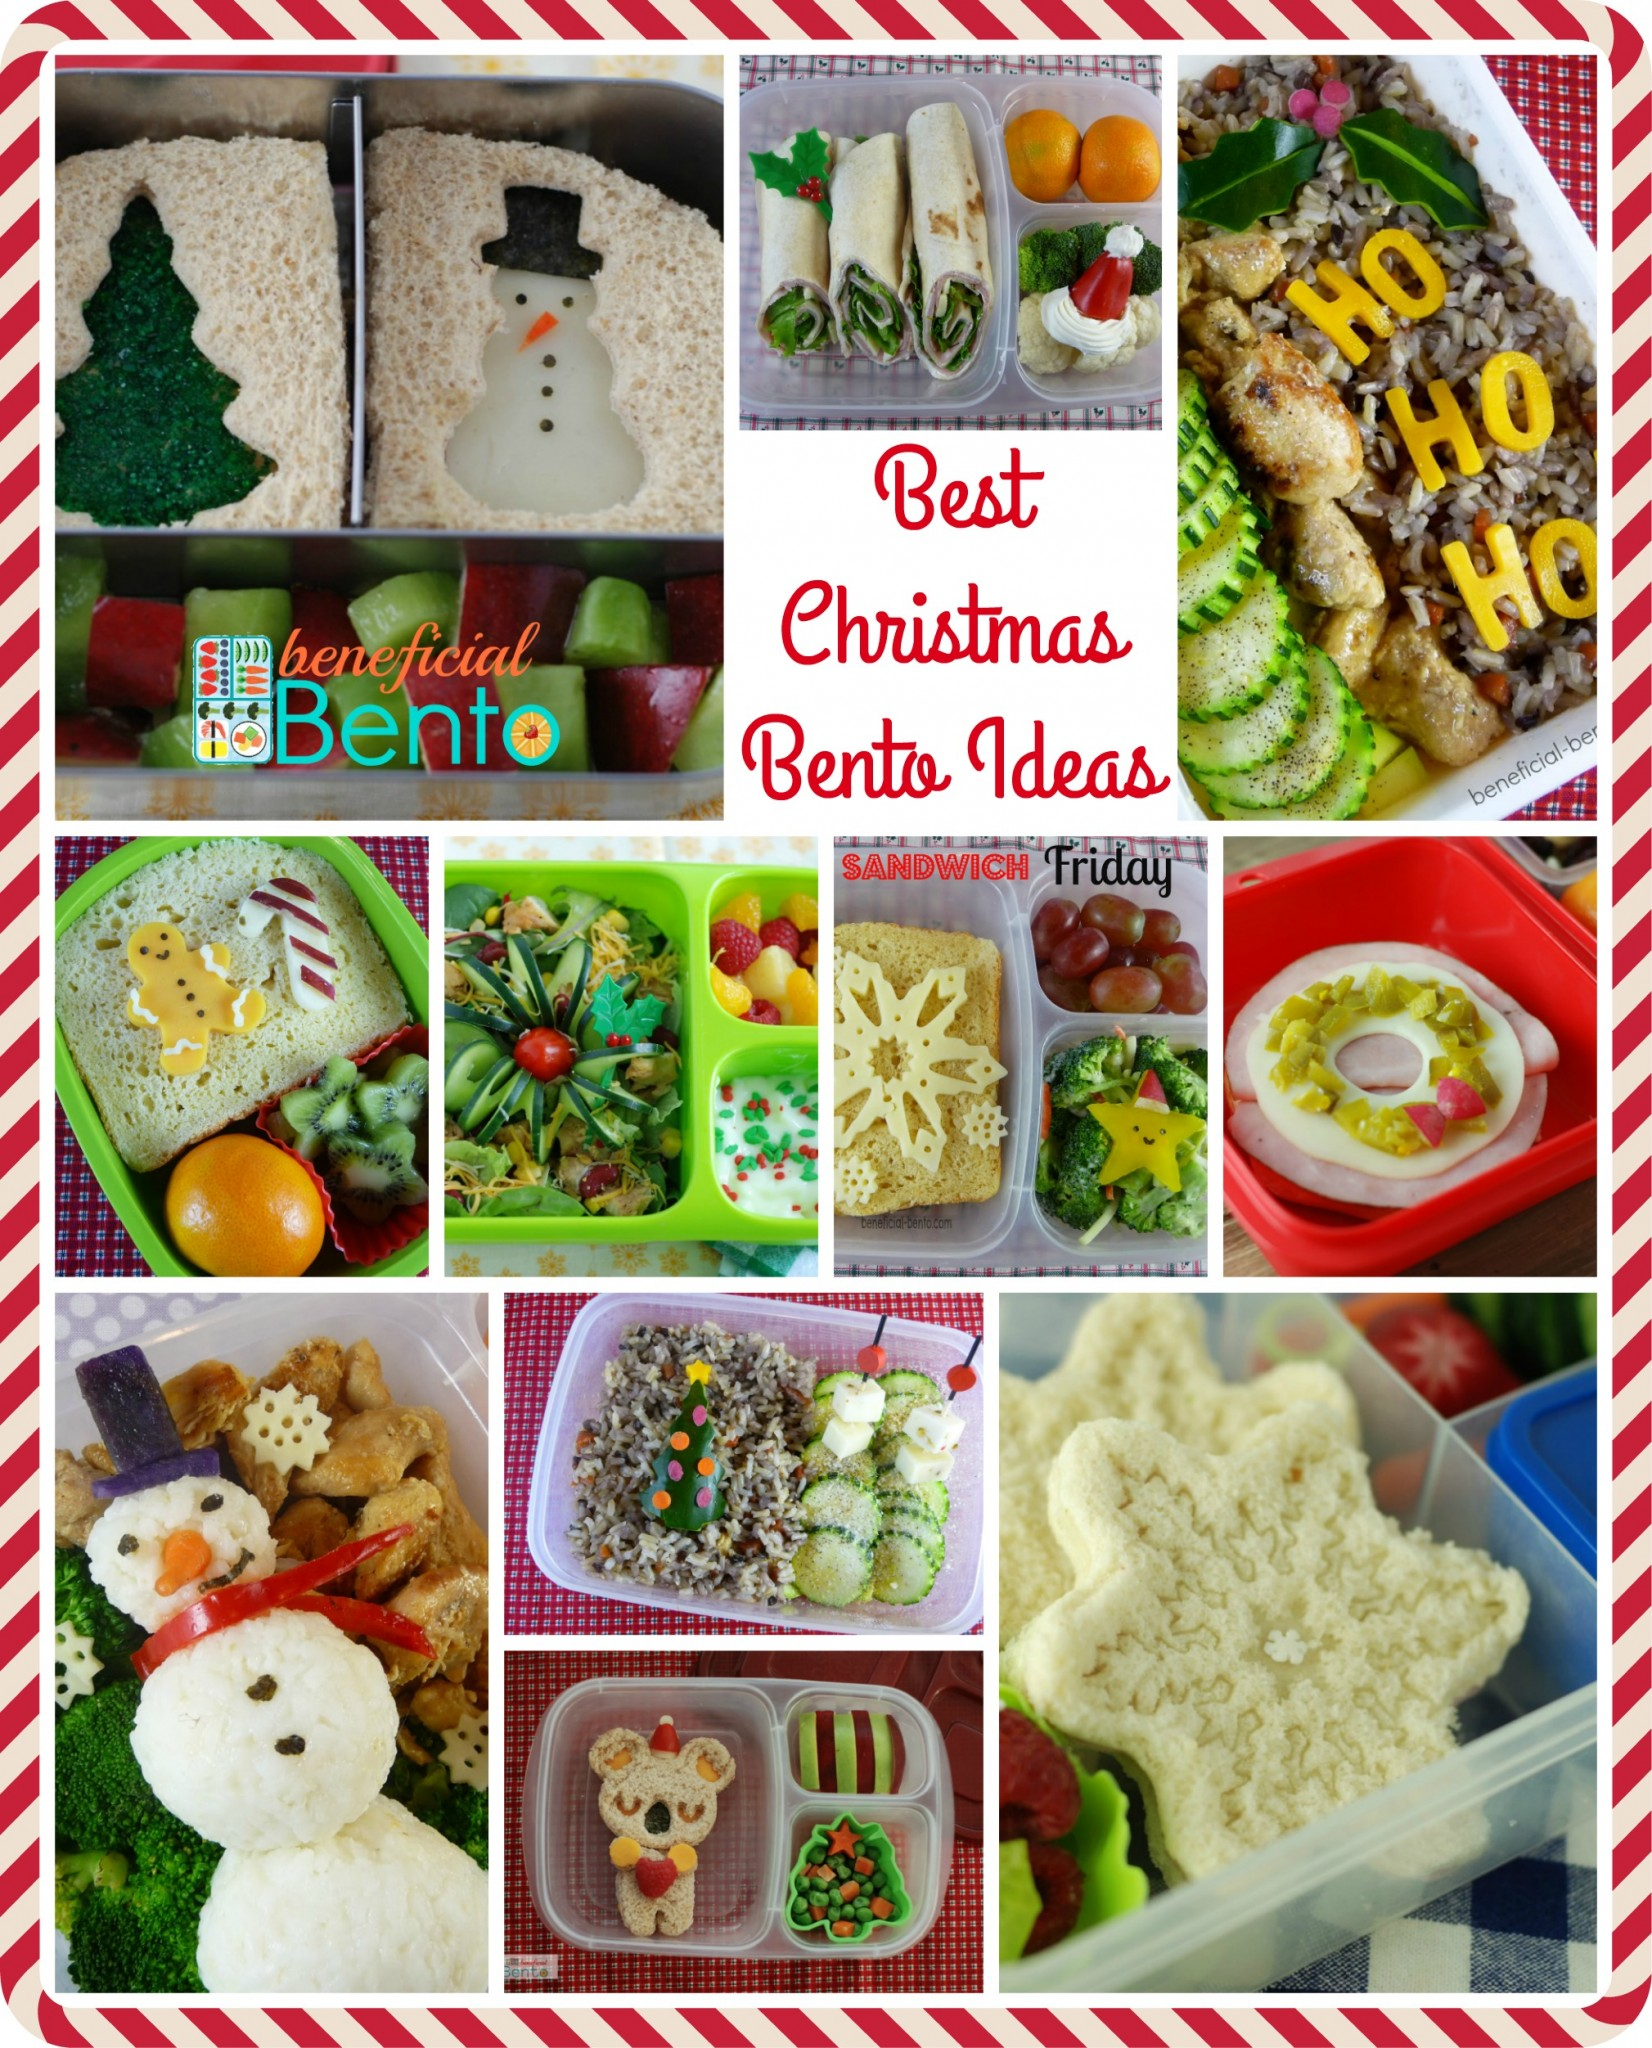 Best christmas bento ideas beneficial bento these are some great ideas for making healthy food look fun for christmas forumfinder Gallery